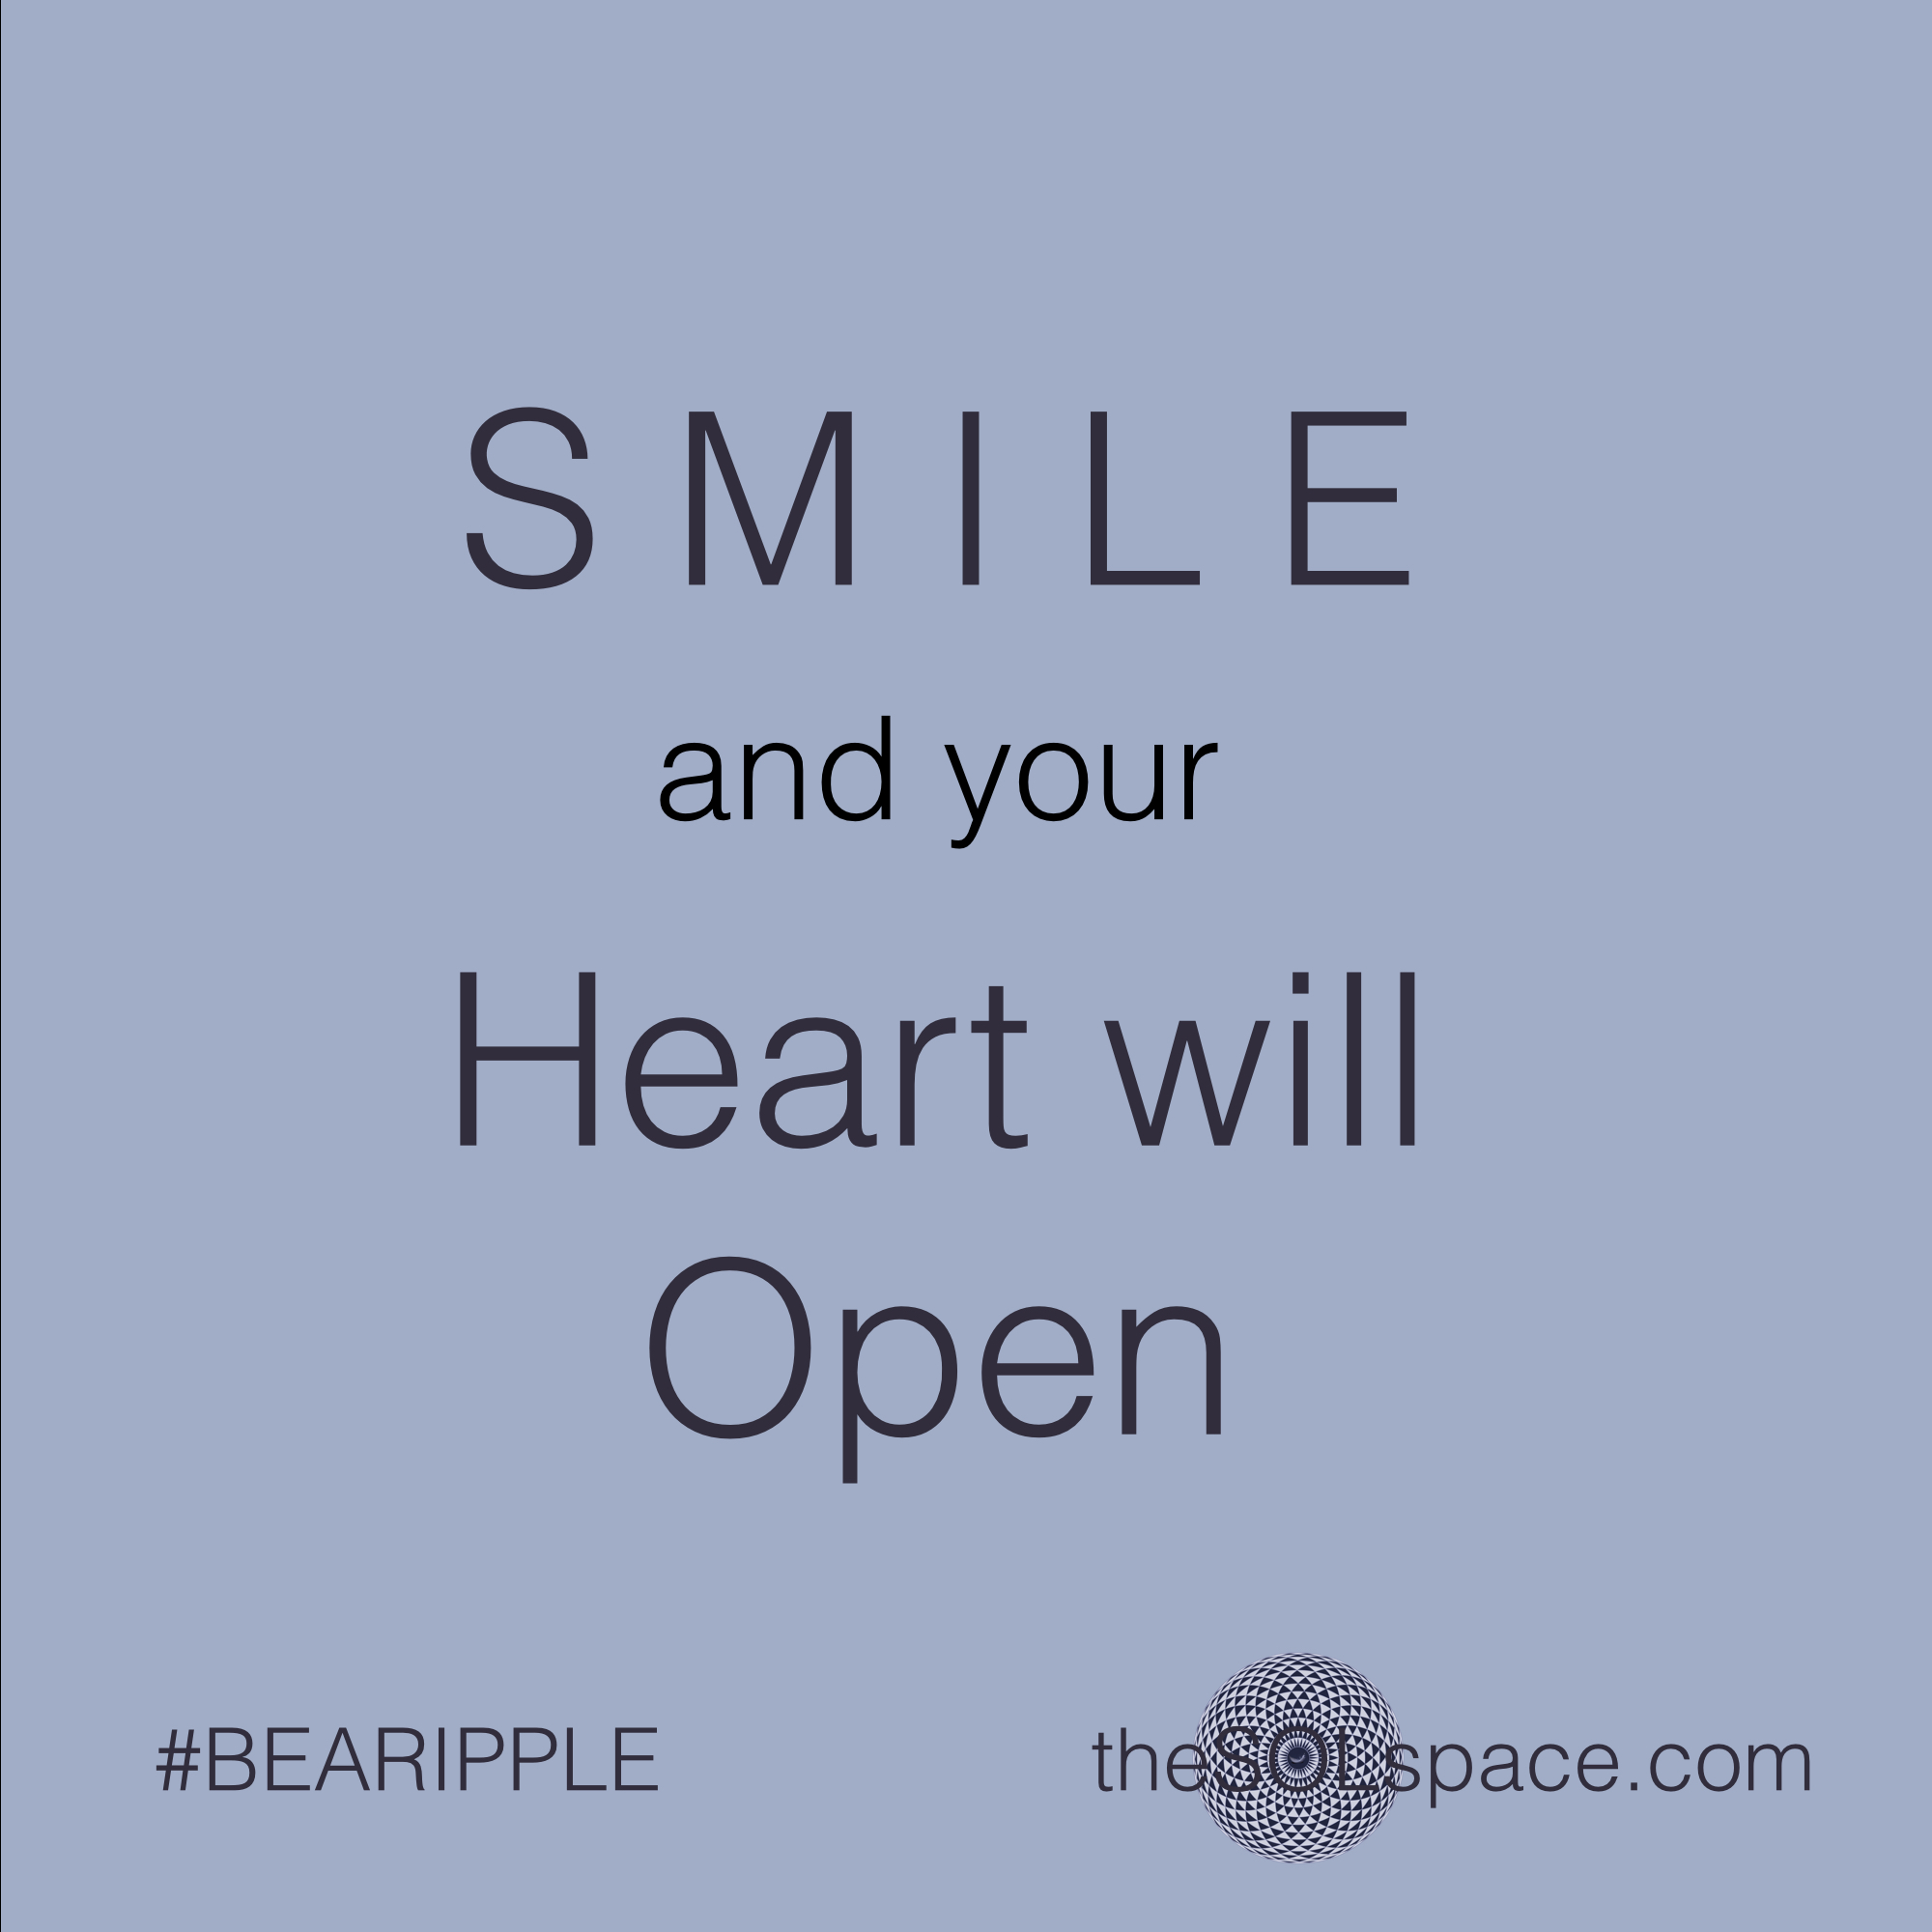 #BeARipple @theSOLspace Smile and your Heart will Open